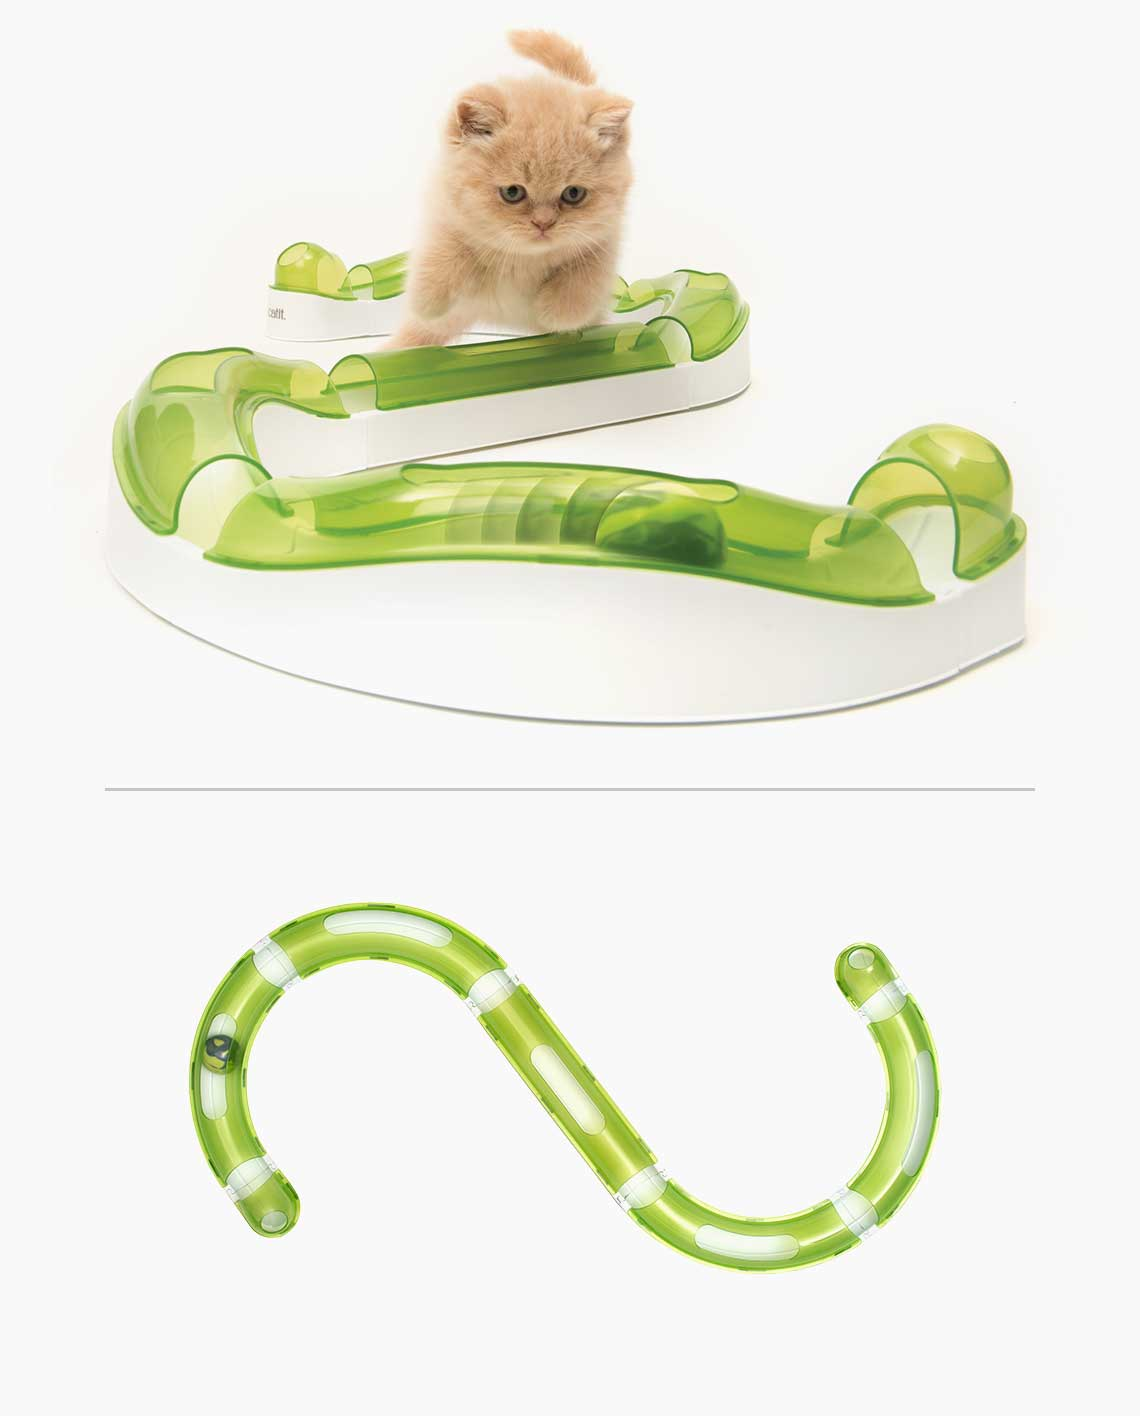 Ginger cat playing with the senses circuit